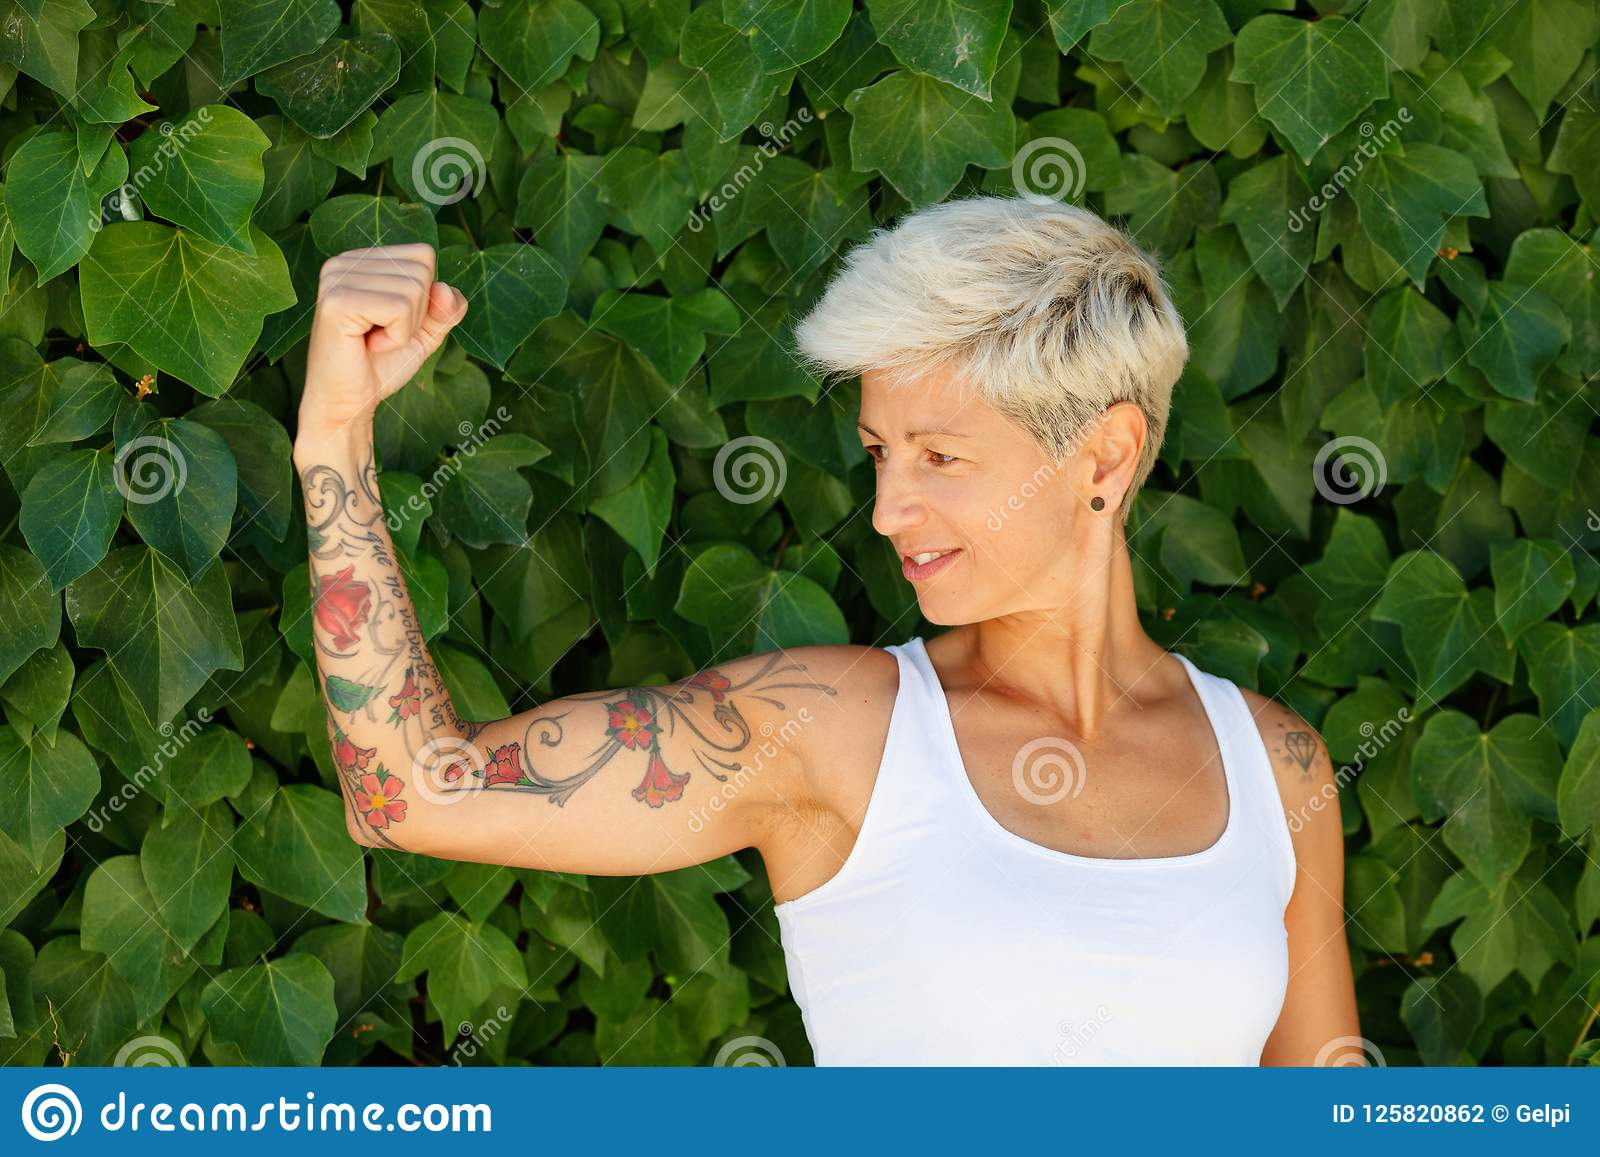 Woman with flowered tattoos on her arm